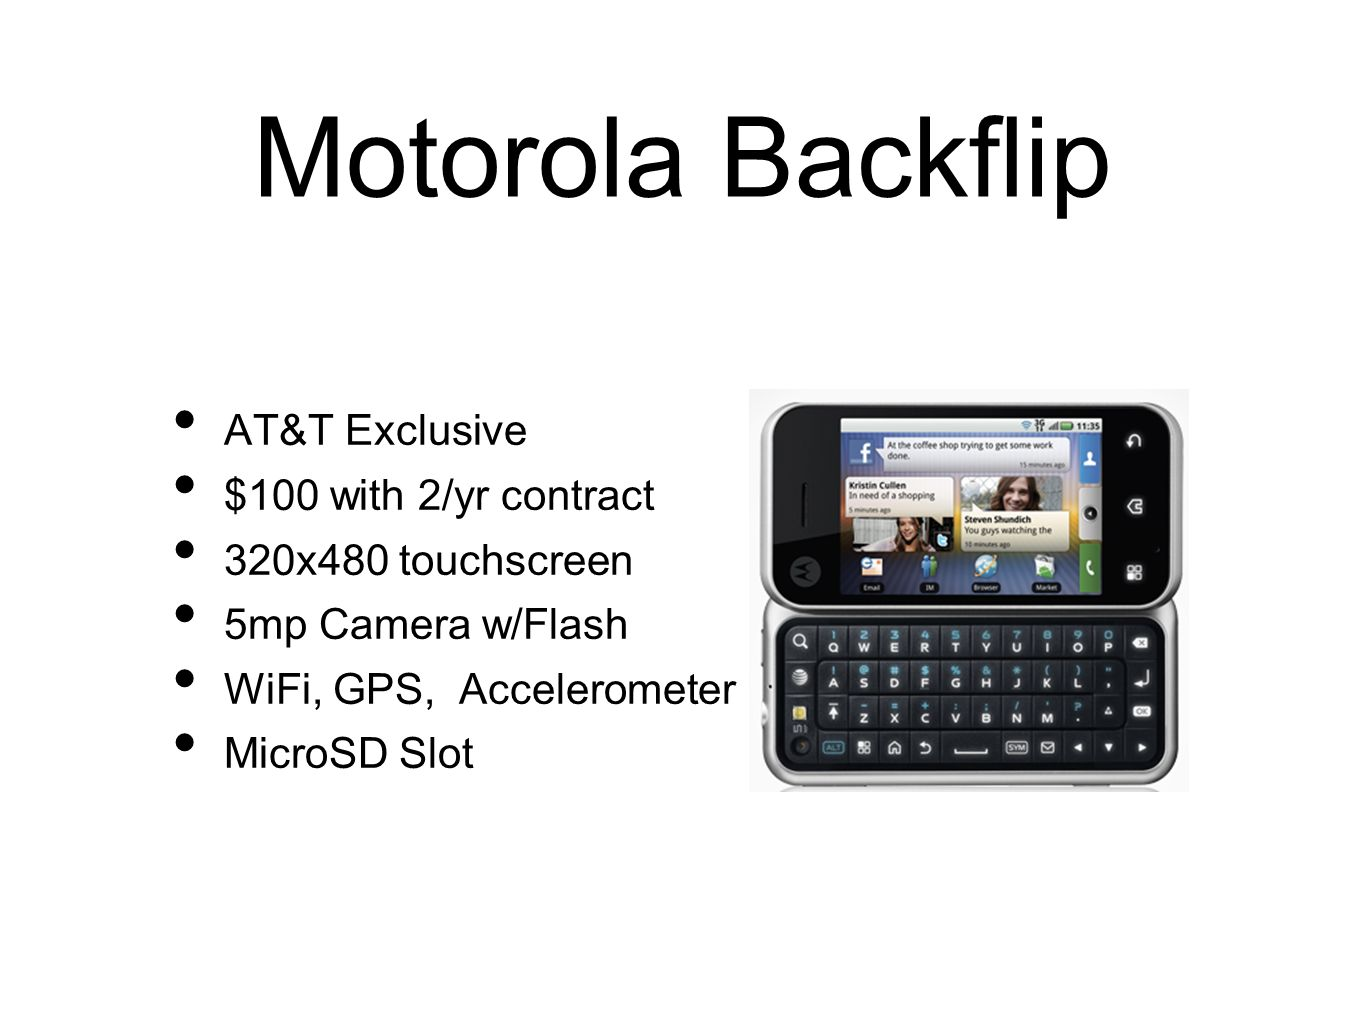 Motorola Backflip AT&T Exclusive $100 with 2/yr contract